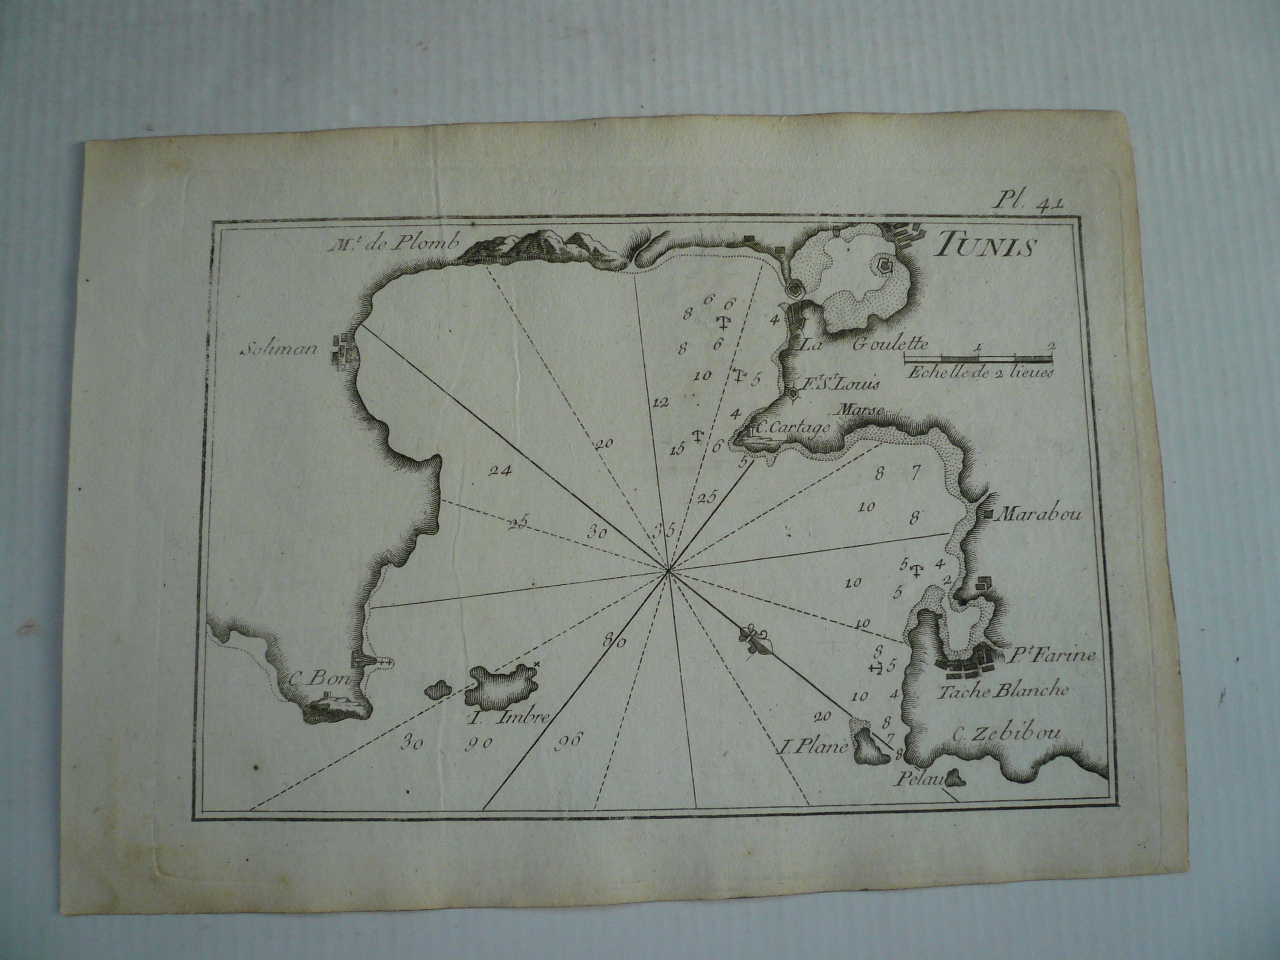 Tunis, nautical map, anno 1795, Roux J., size: 12x18 cm..